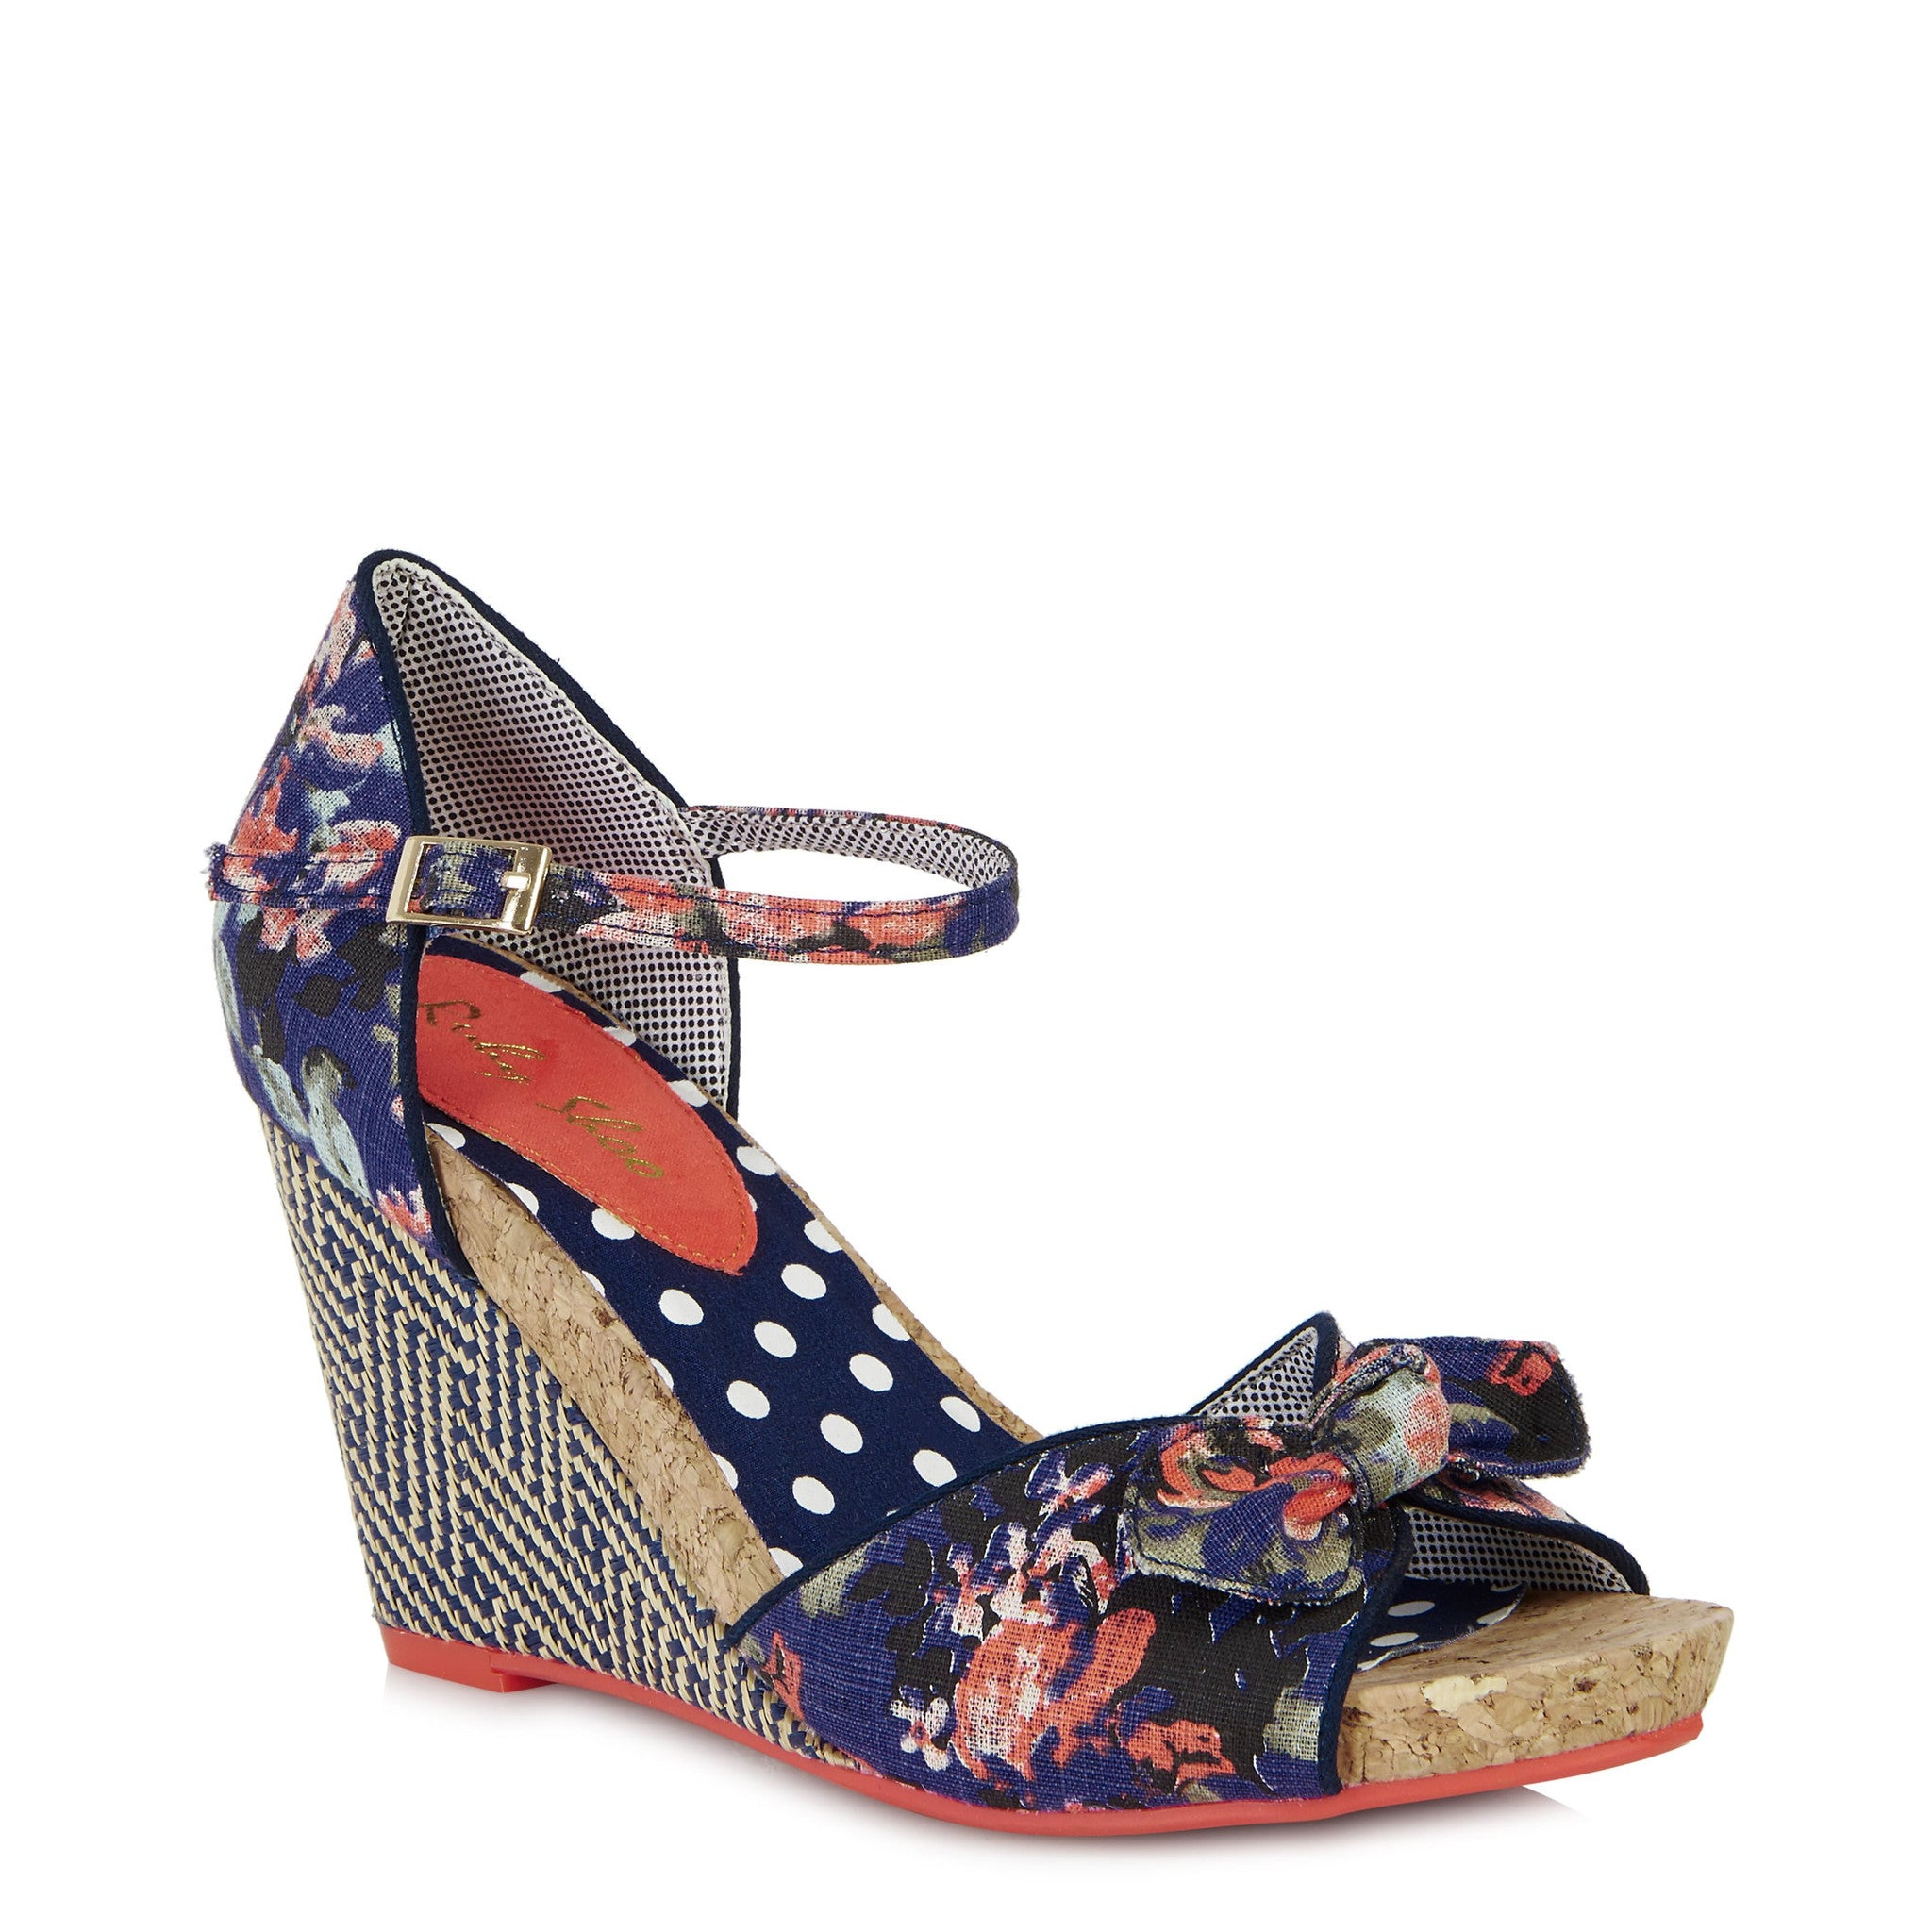 6a098898 Ruby Shoo Molly Navy Blue Floral Open Toe Espadrille Wedge Heels - Pretty  Kitty Fashion